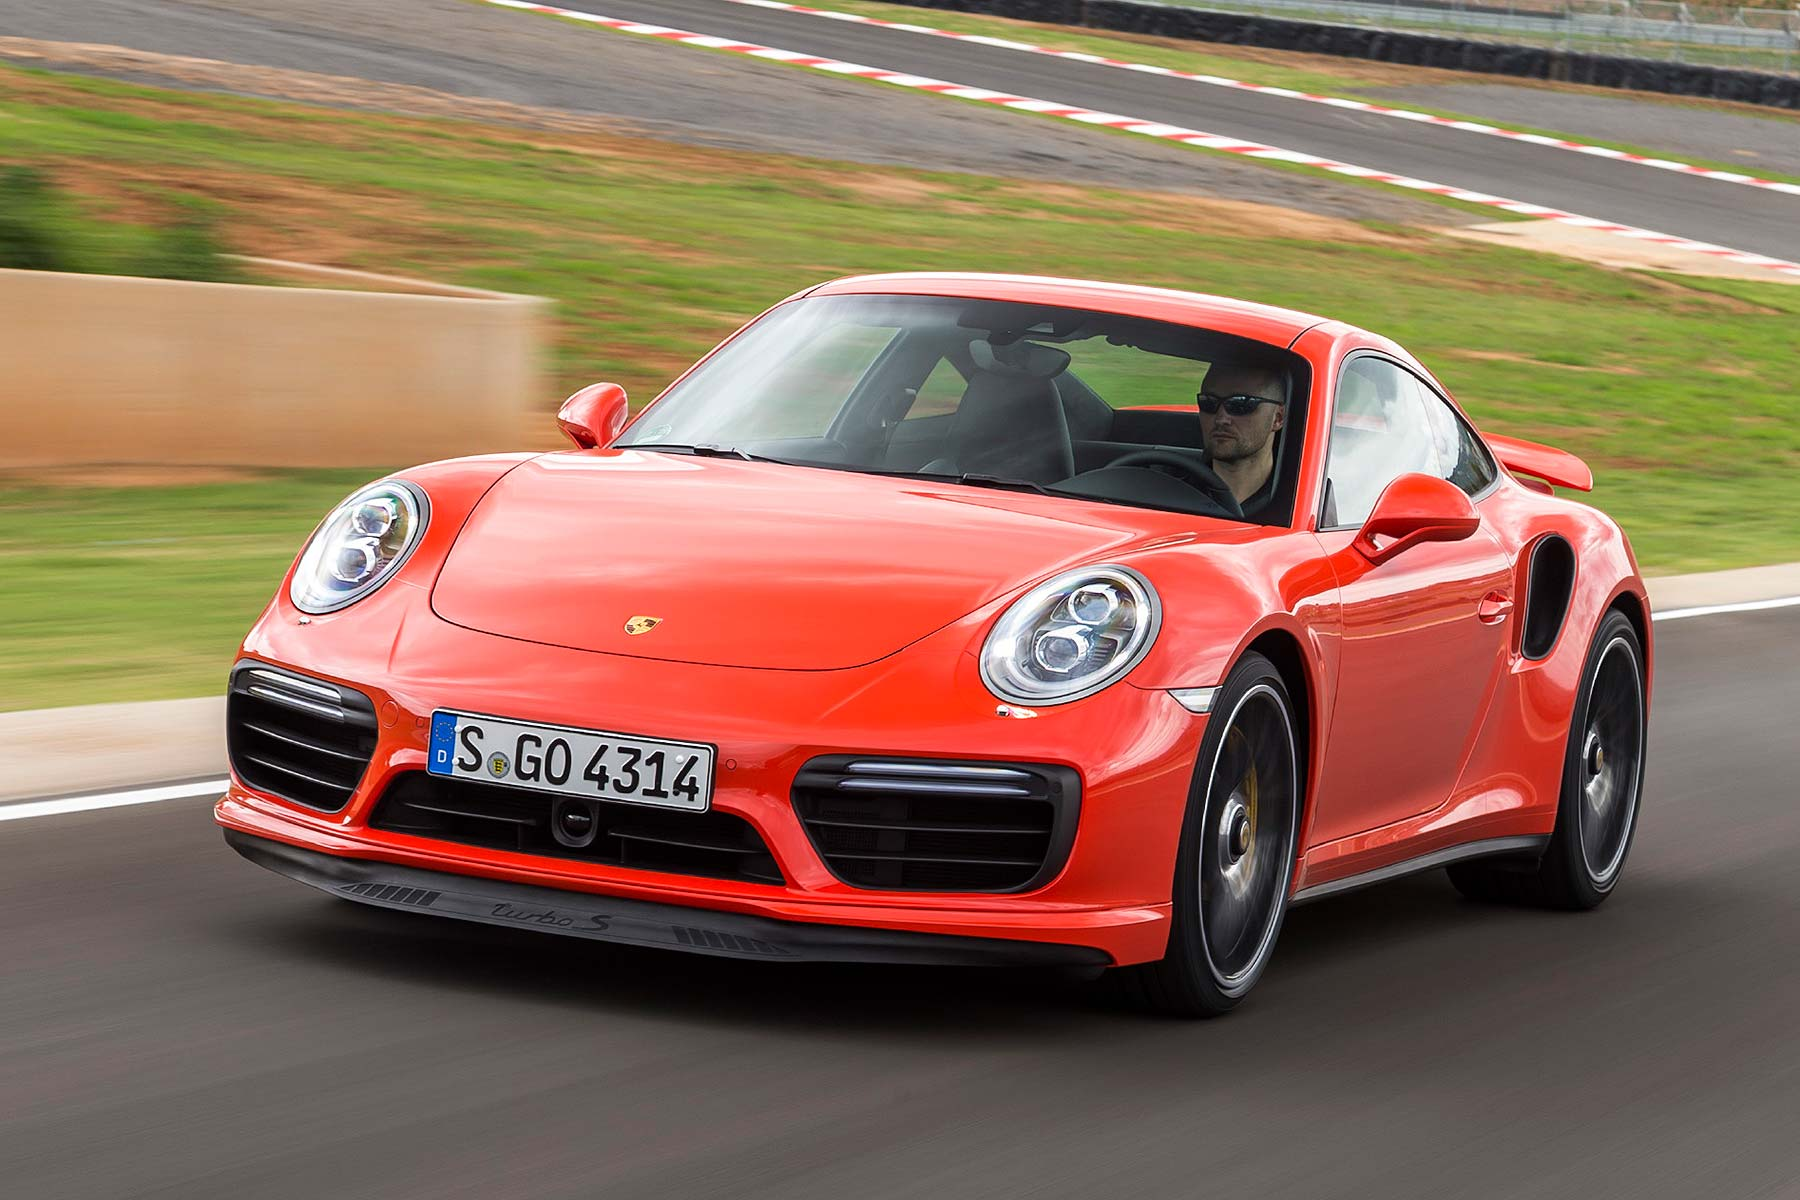 2016 Porsche 911 Turbo S Review First Drive Motoring Research